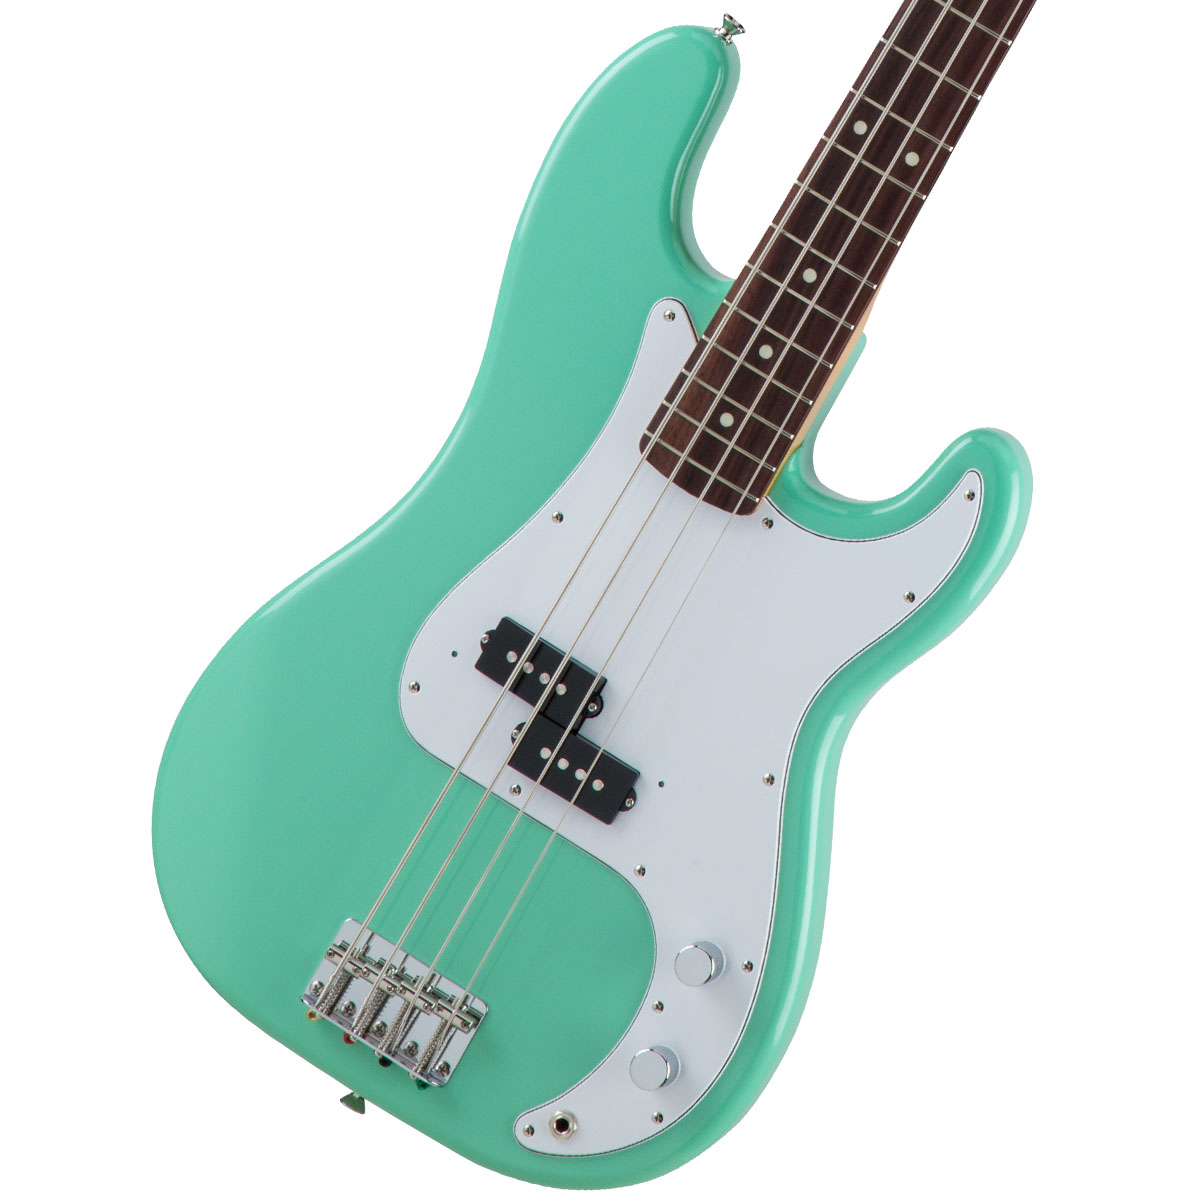 Fender / Made in Japan Traditional 60s Precision Bass Rosewood Fingerboard Surf Green 【お取り寄せ商品】《FENDERケアキットプレゼント/+671038200》《ベース弦1setプレゼント!/+811131900》